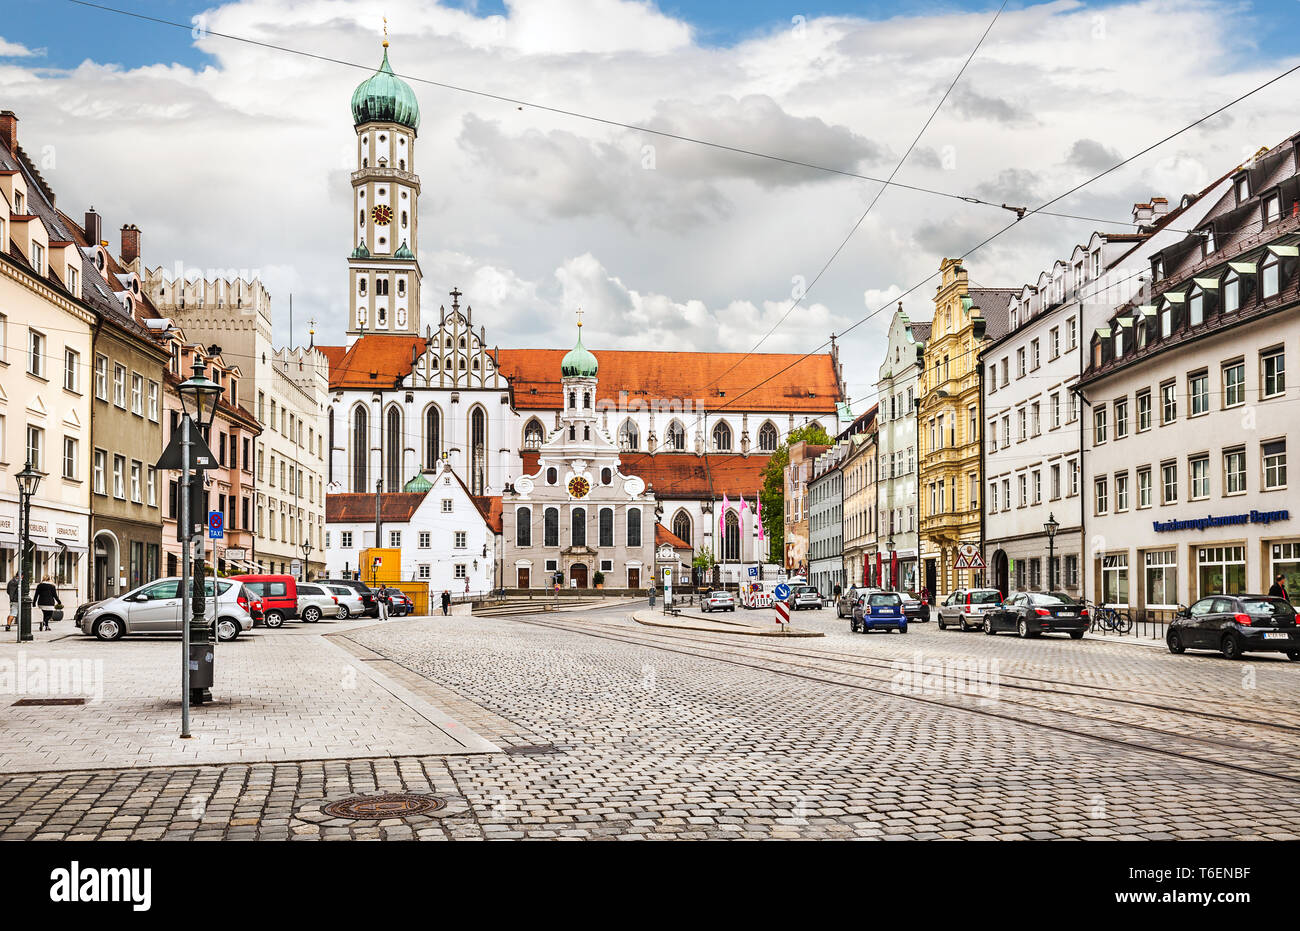 City centre of Augsburg. - Stock Image